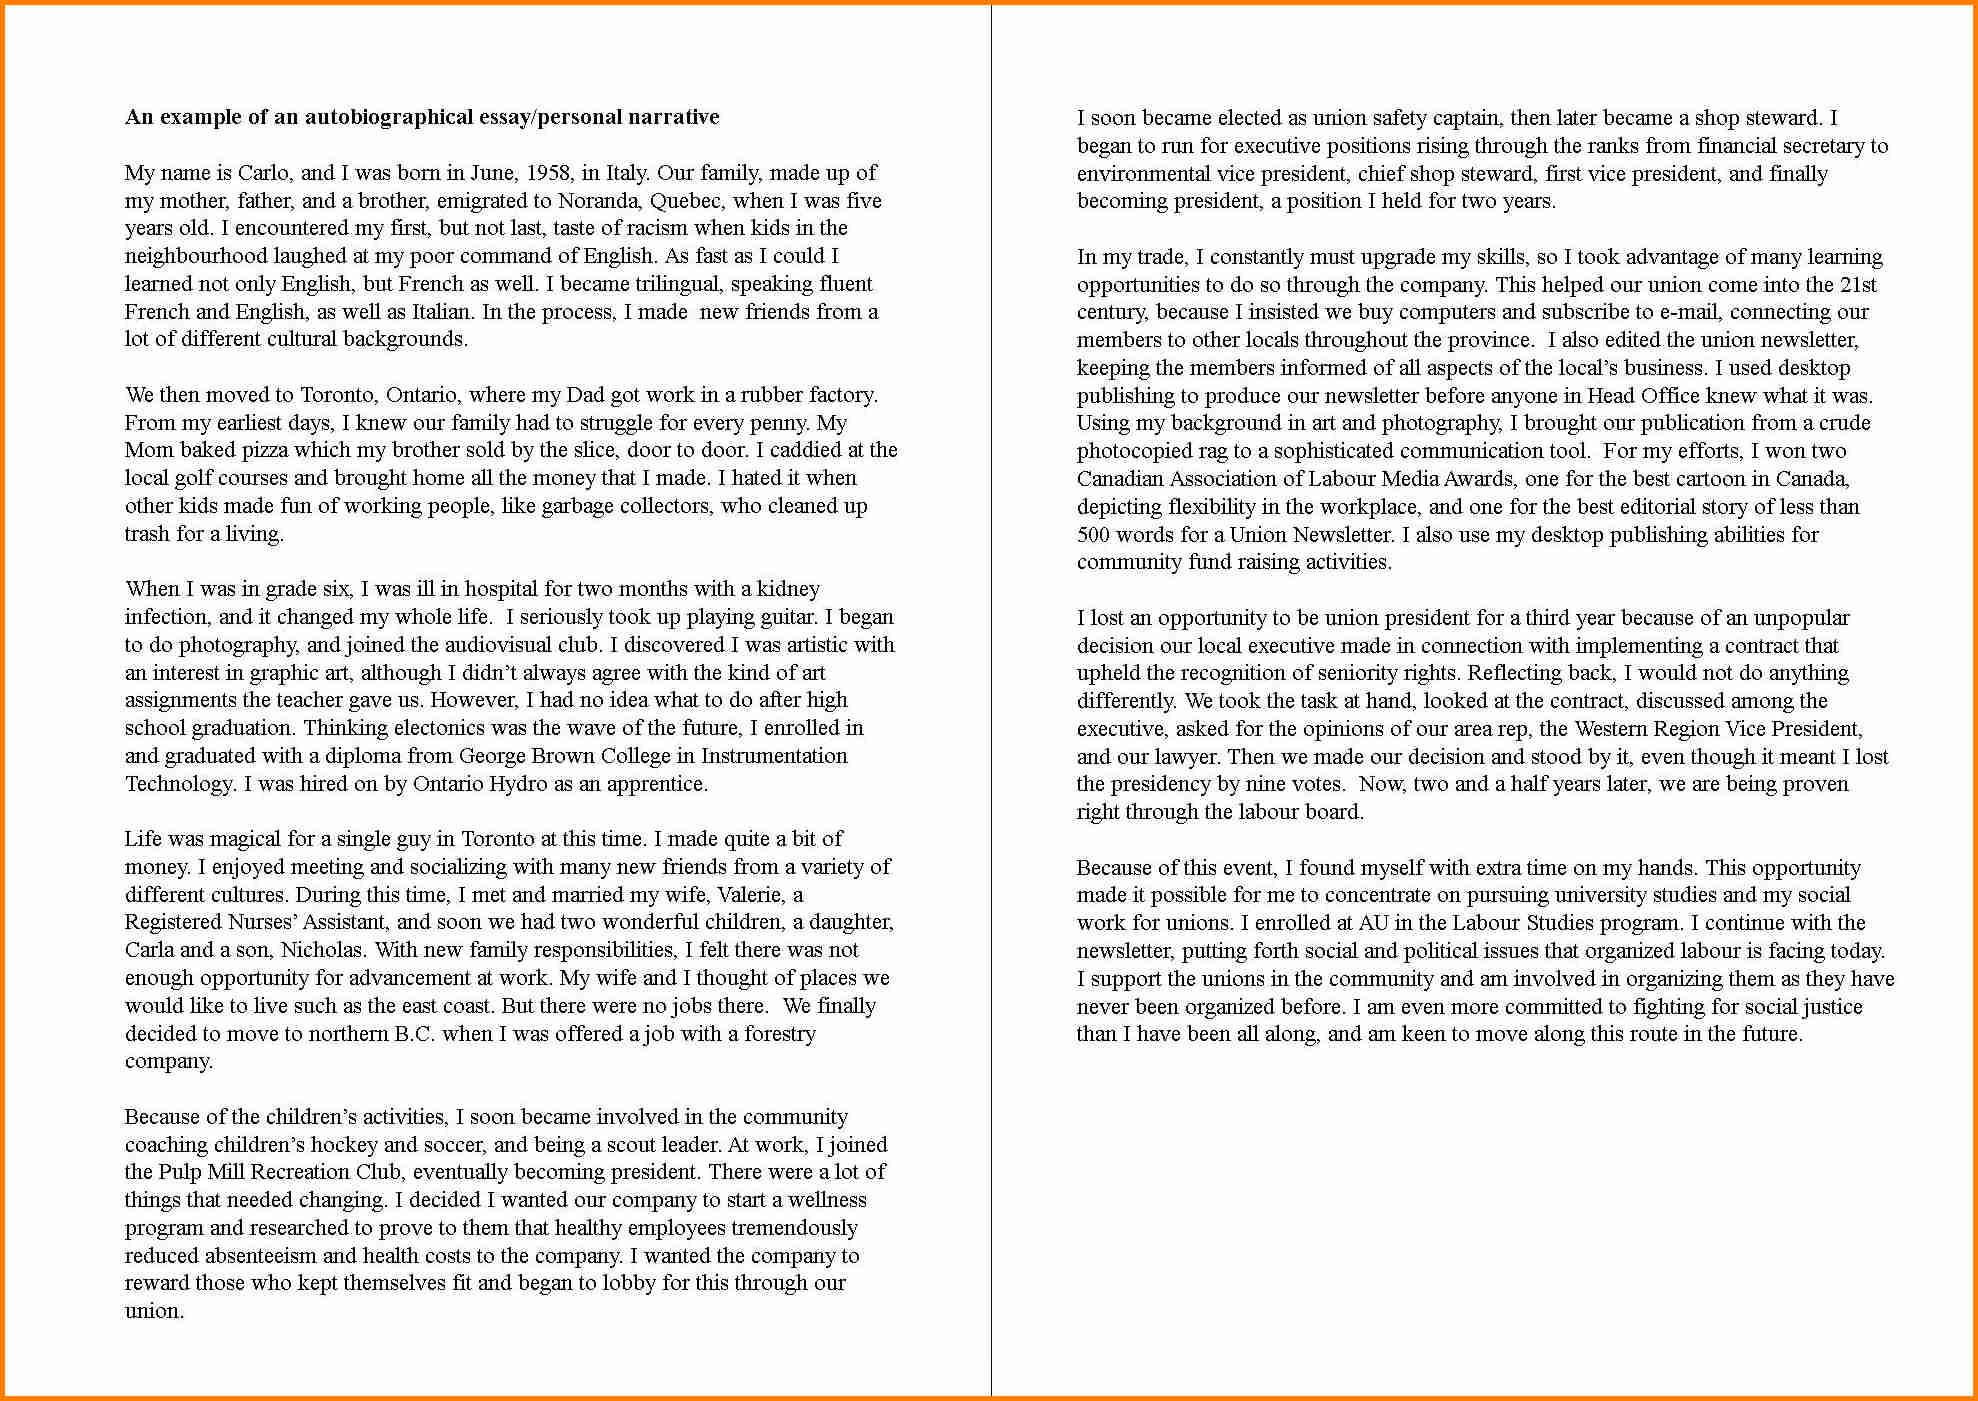 013 Biography Essay Example Brilliant Ideas Of With Impressive Conclusion Examples College Titles Full